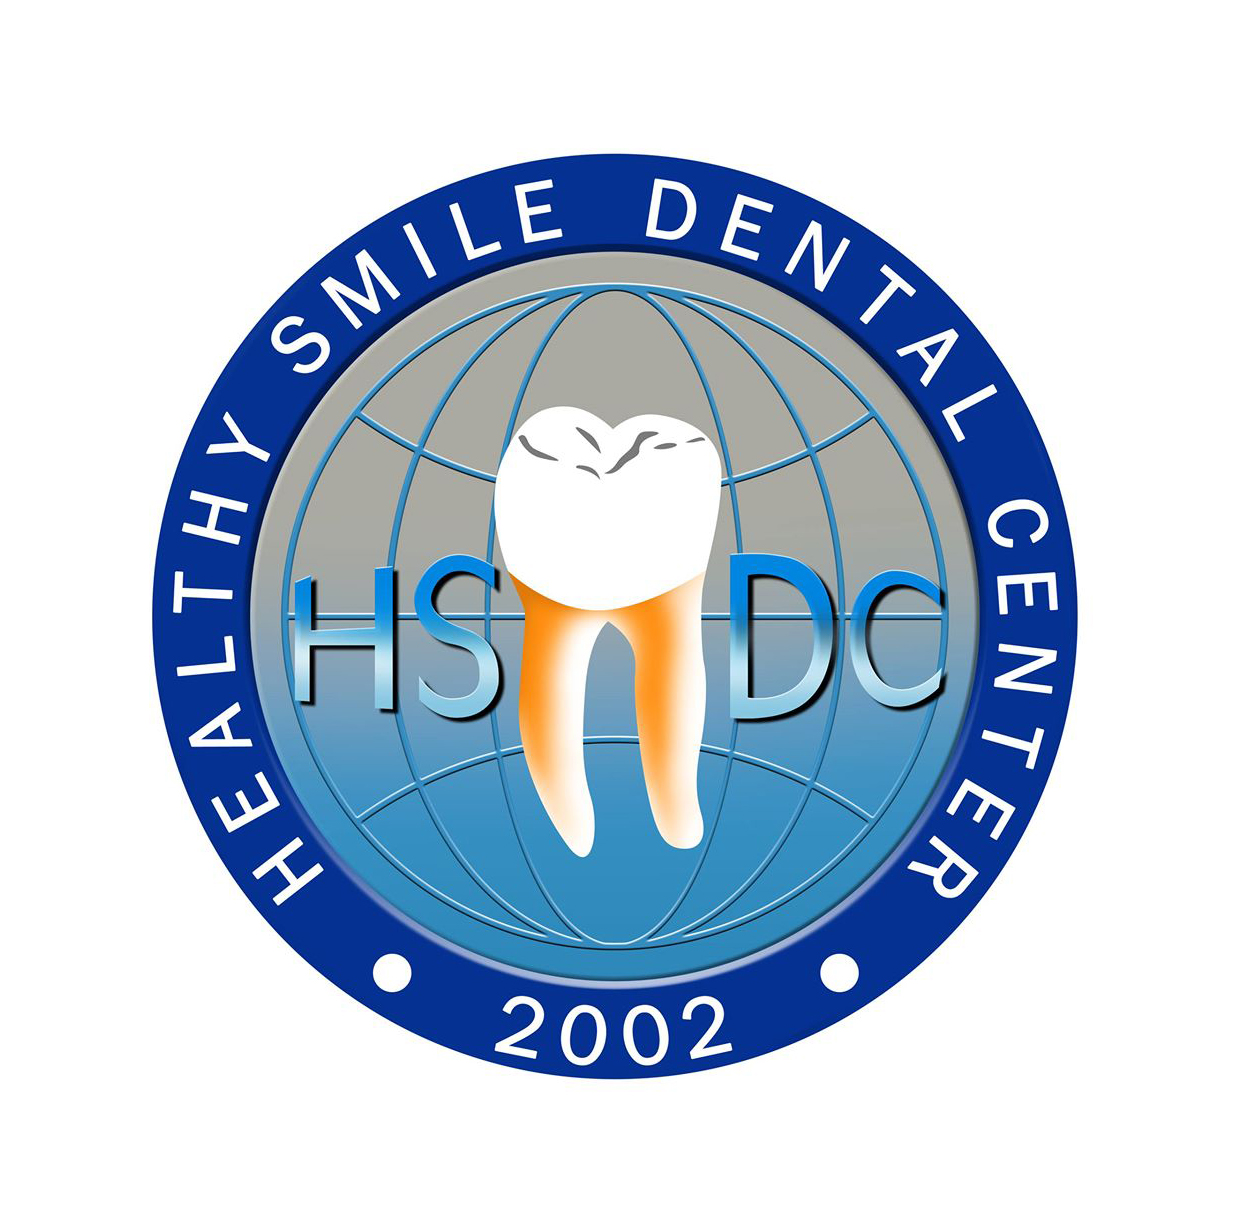 HEALTHY SMILE DENTAL CENTER